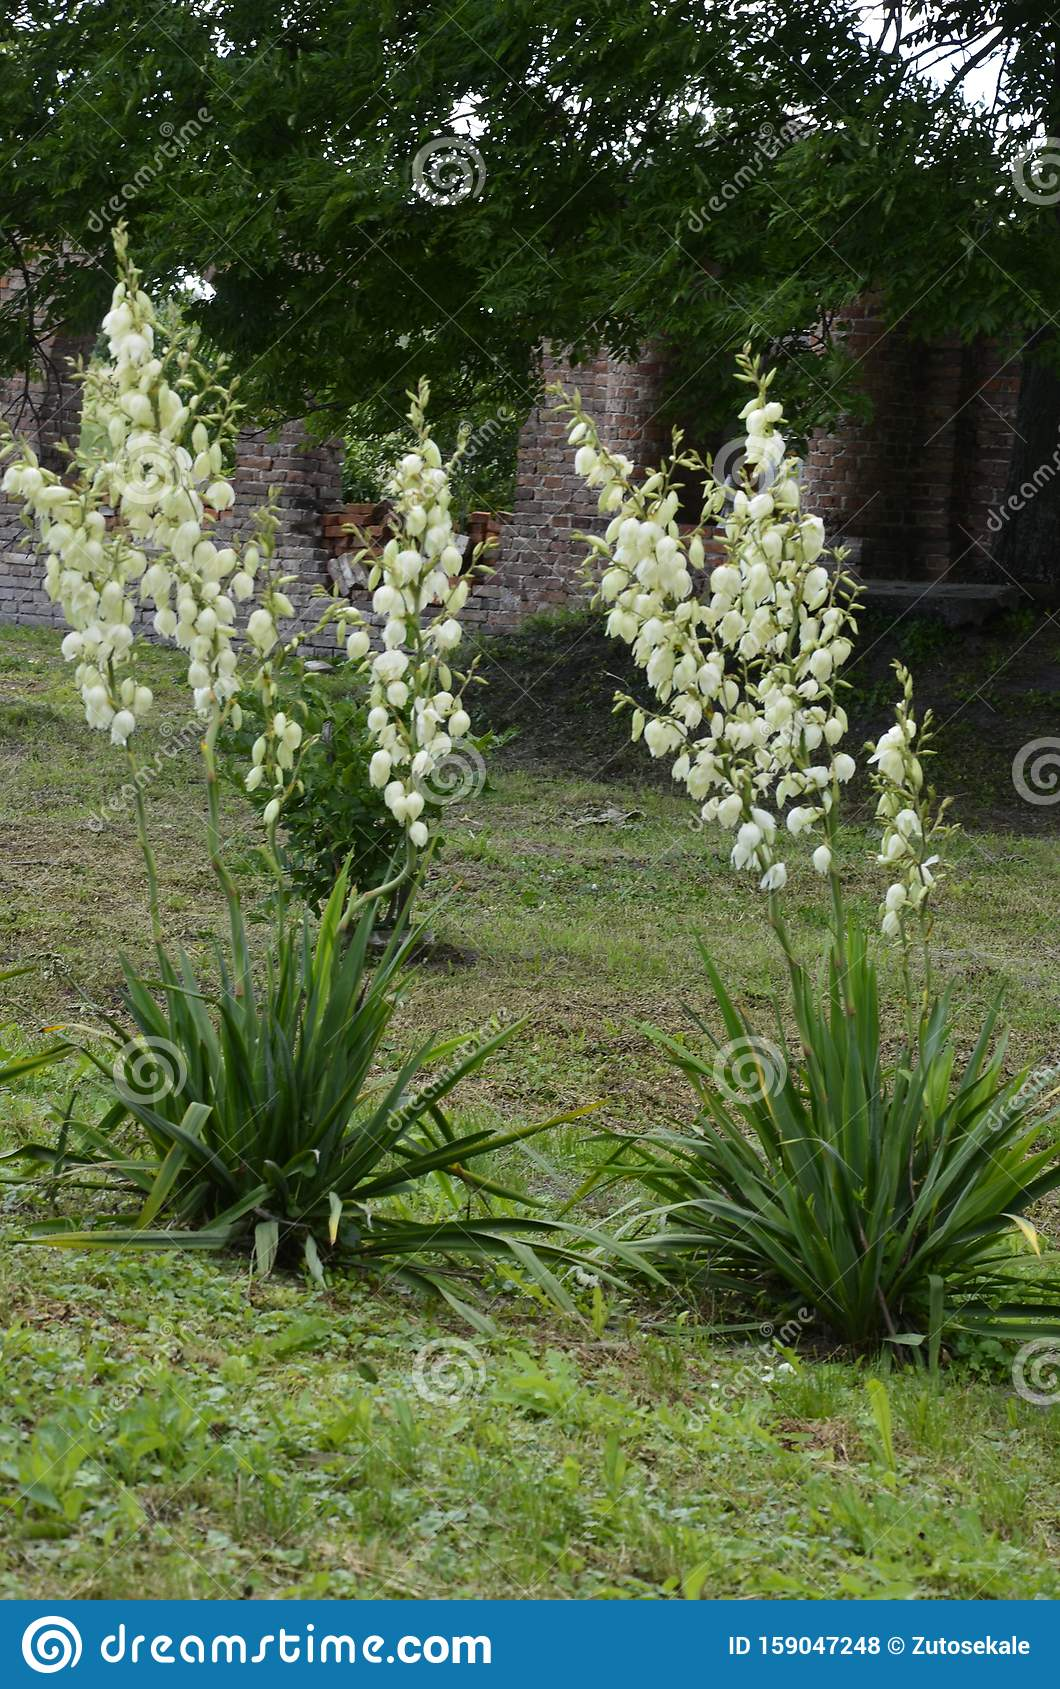 White Flowers Of Yucca Plant Stock Photo Image Of Floral Leaf 159047248